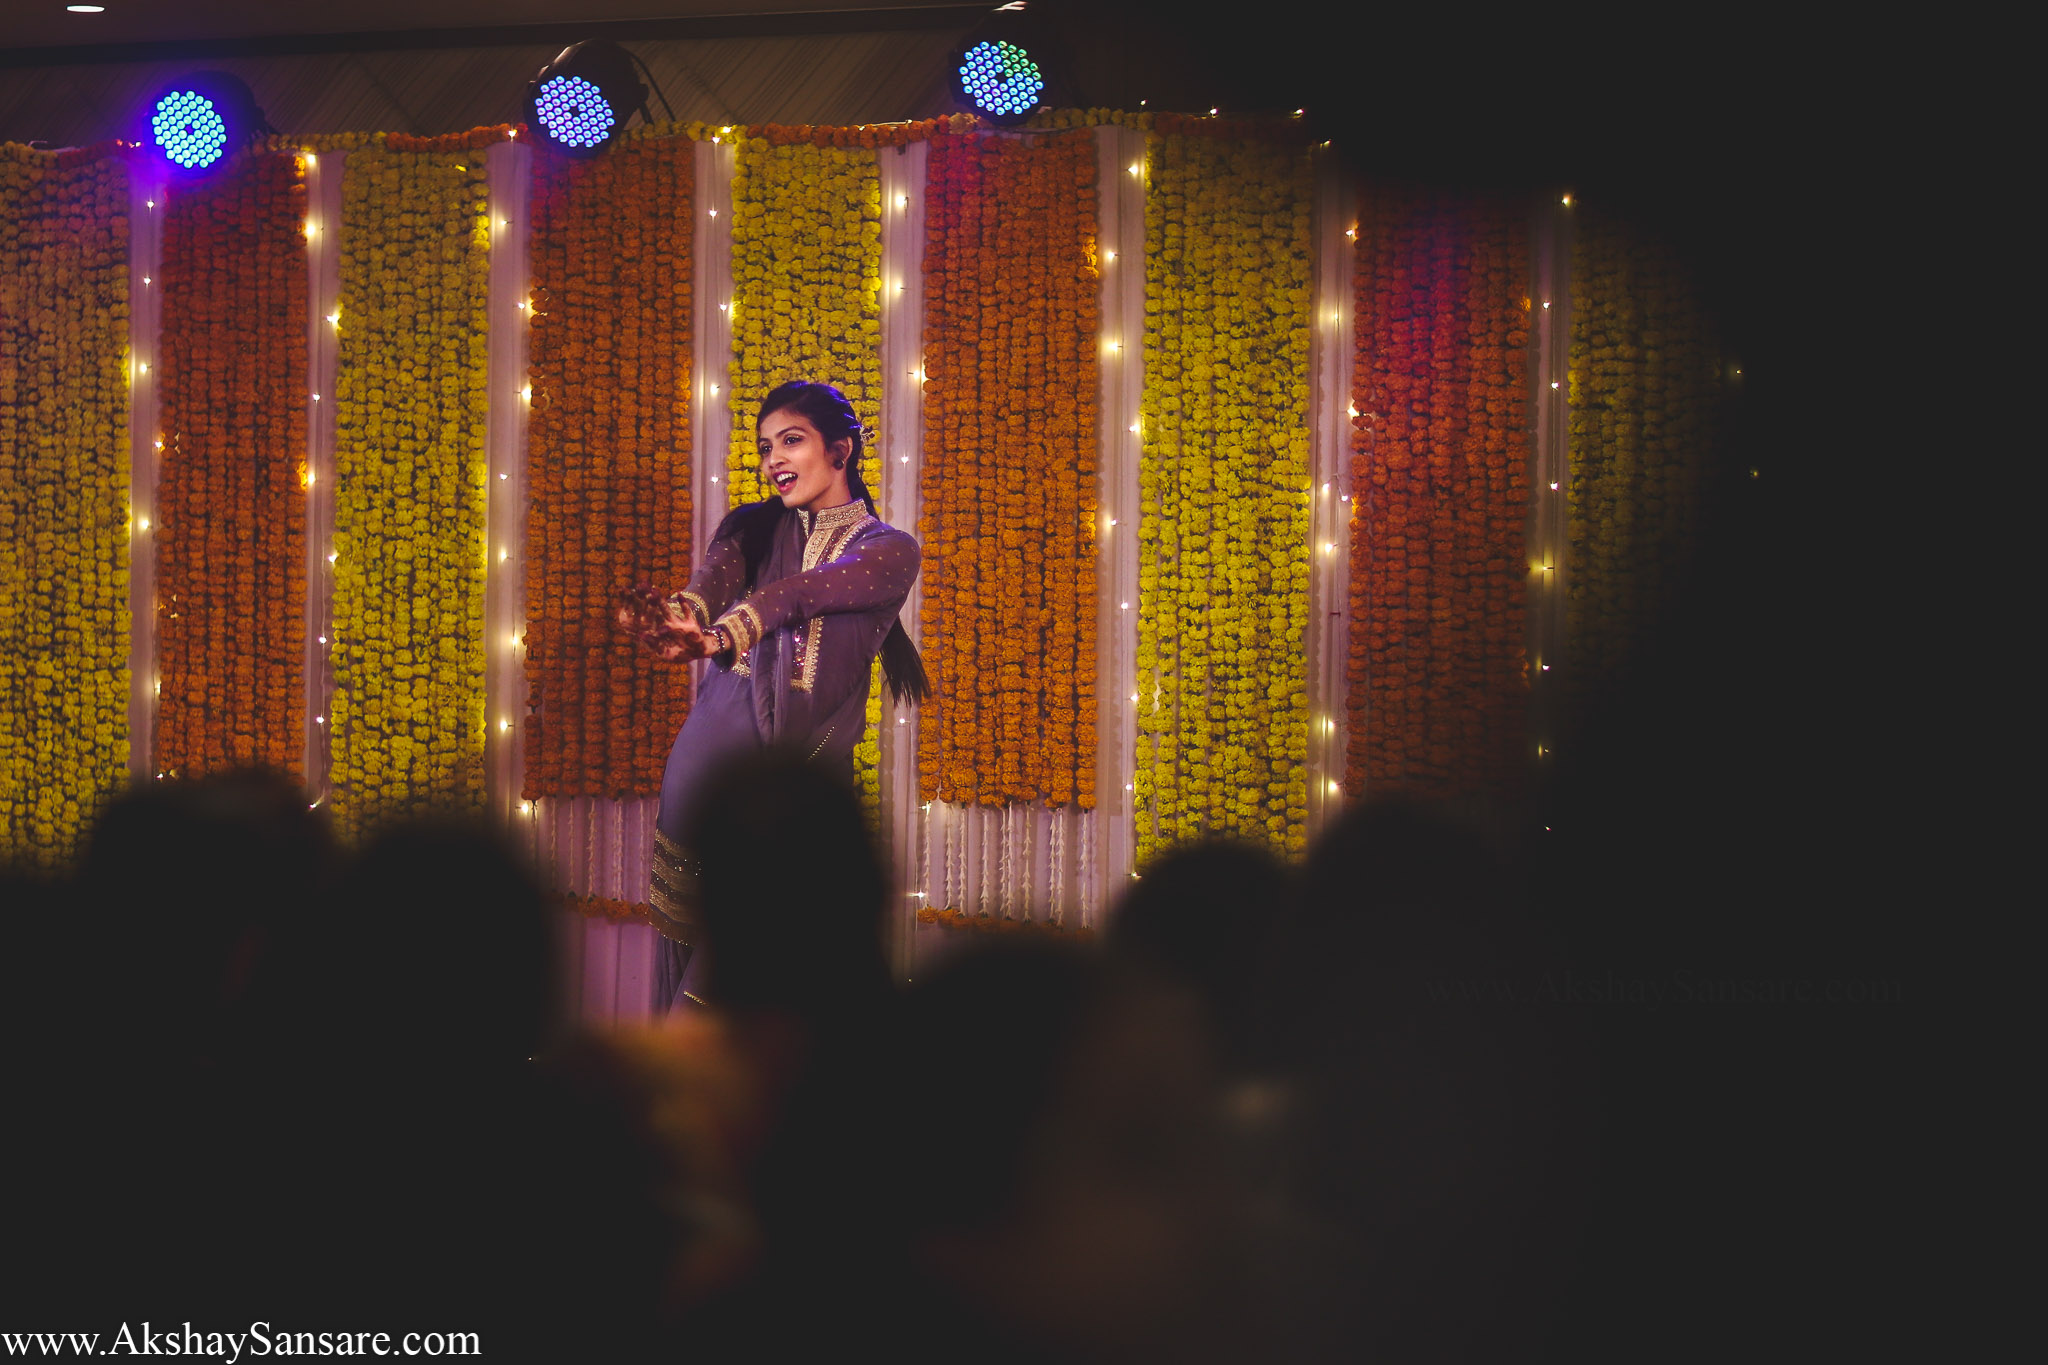 Ajay & Devika Akshay Sansare Photography Best Candid wedding photographer in mumbai india14.jpg